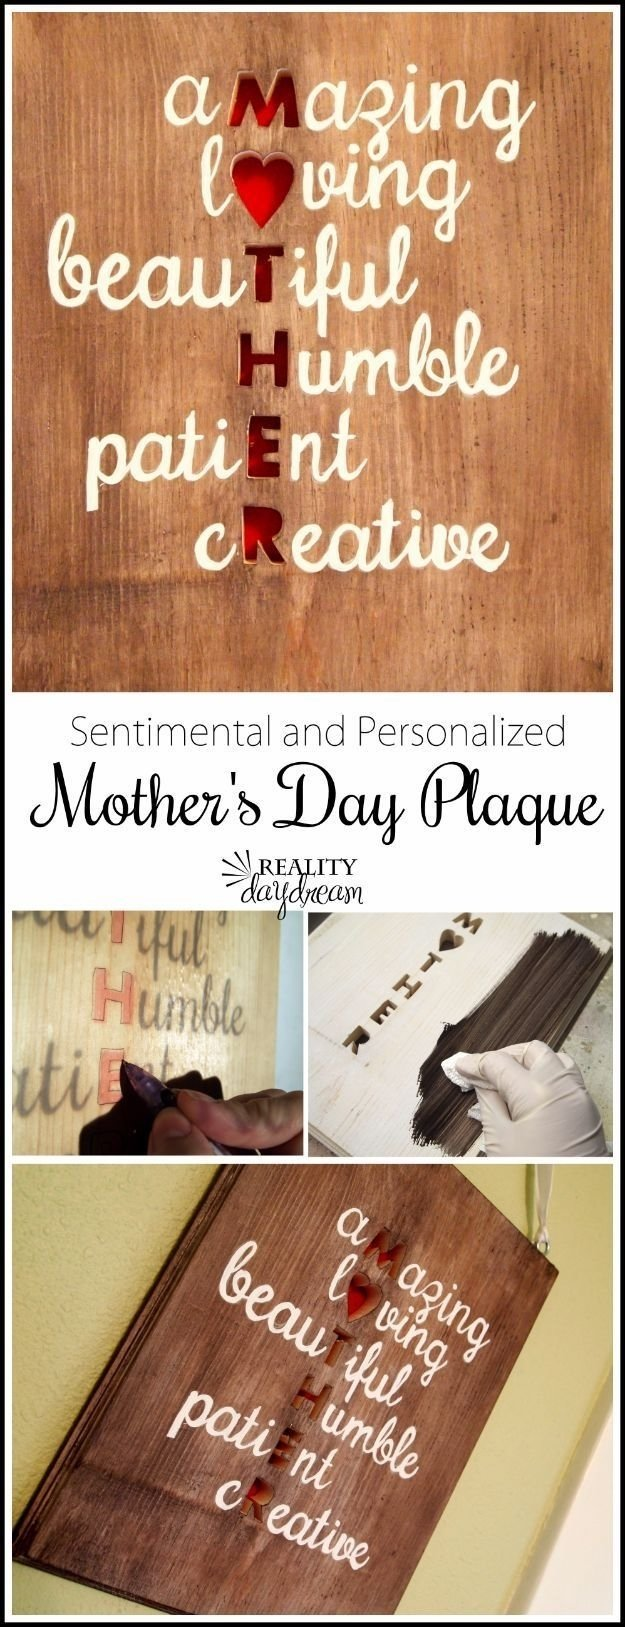 10 Elegant Birthday Gift Ideas For Mom From Son 418 Best Diy Gifts Moms Images